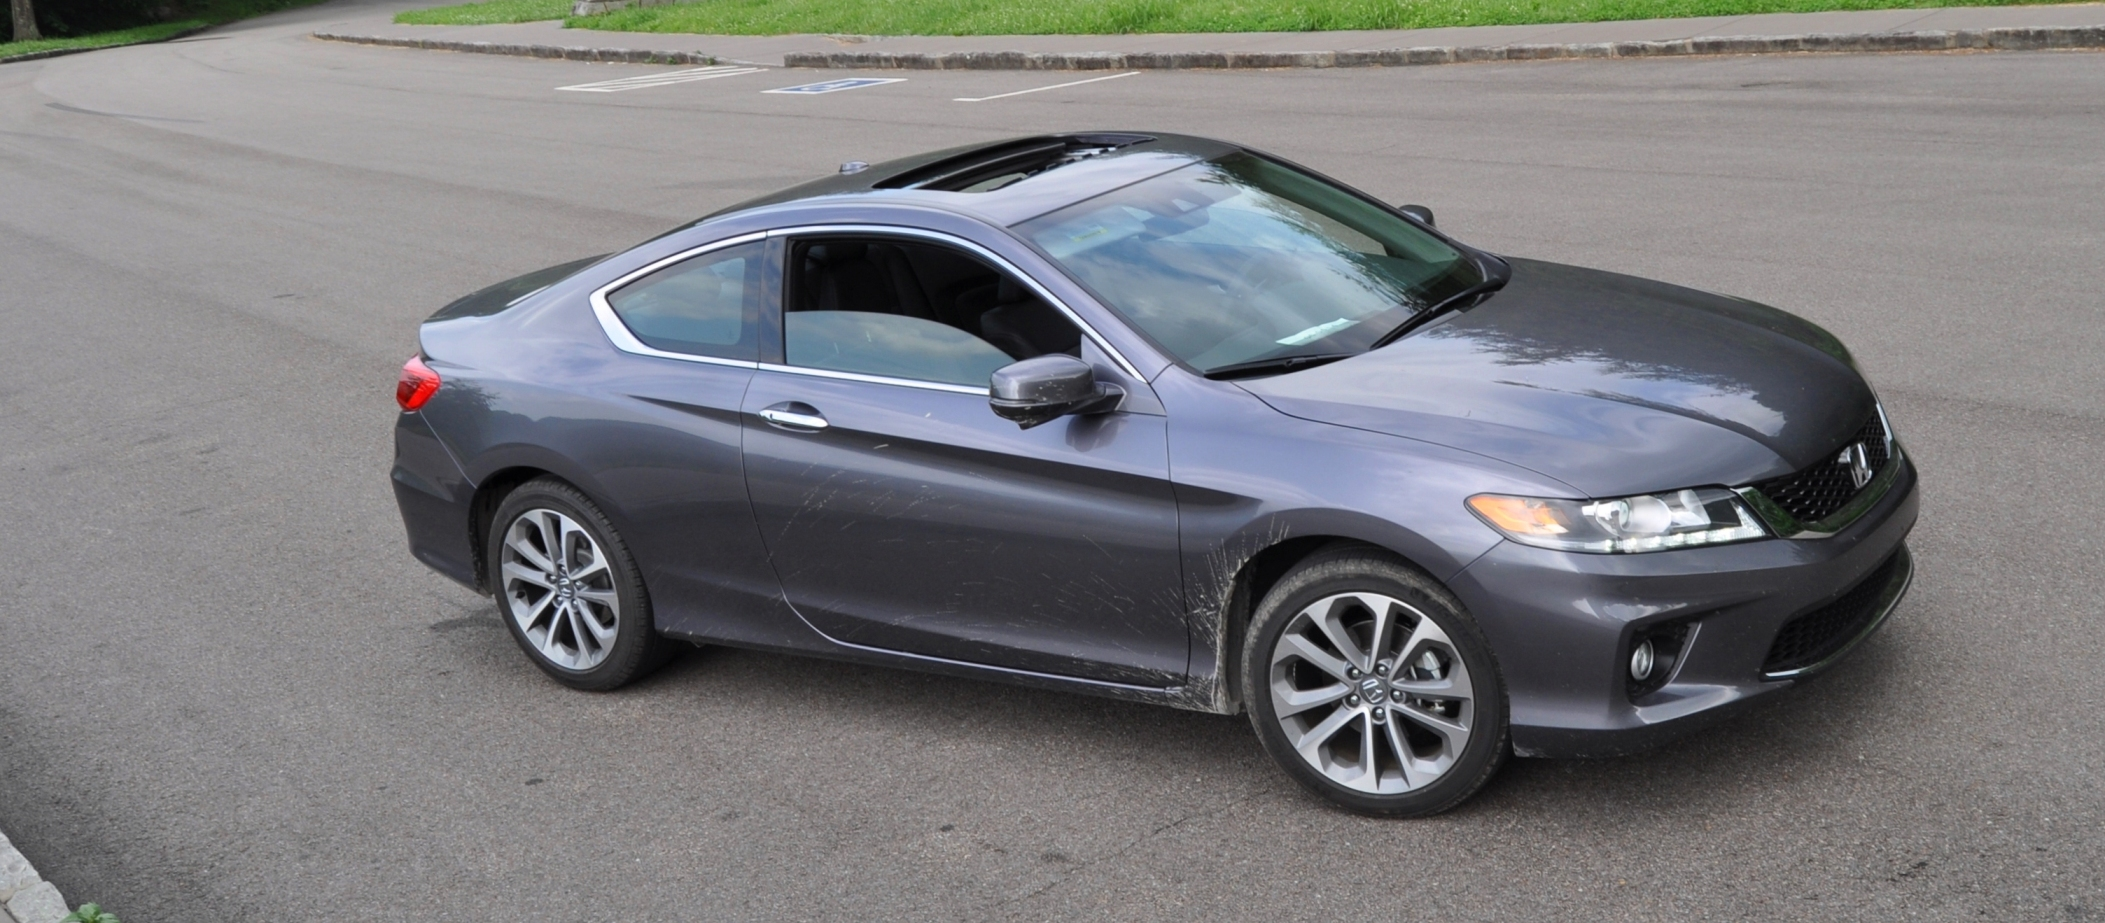 2014 accord coupe v6 manual